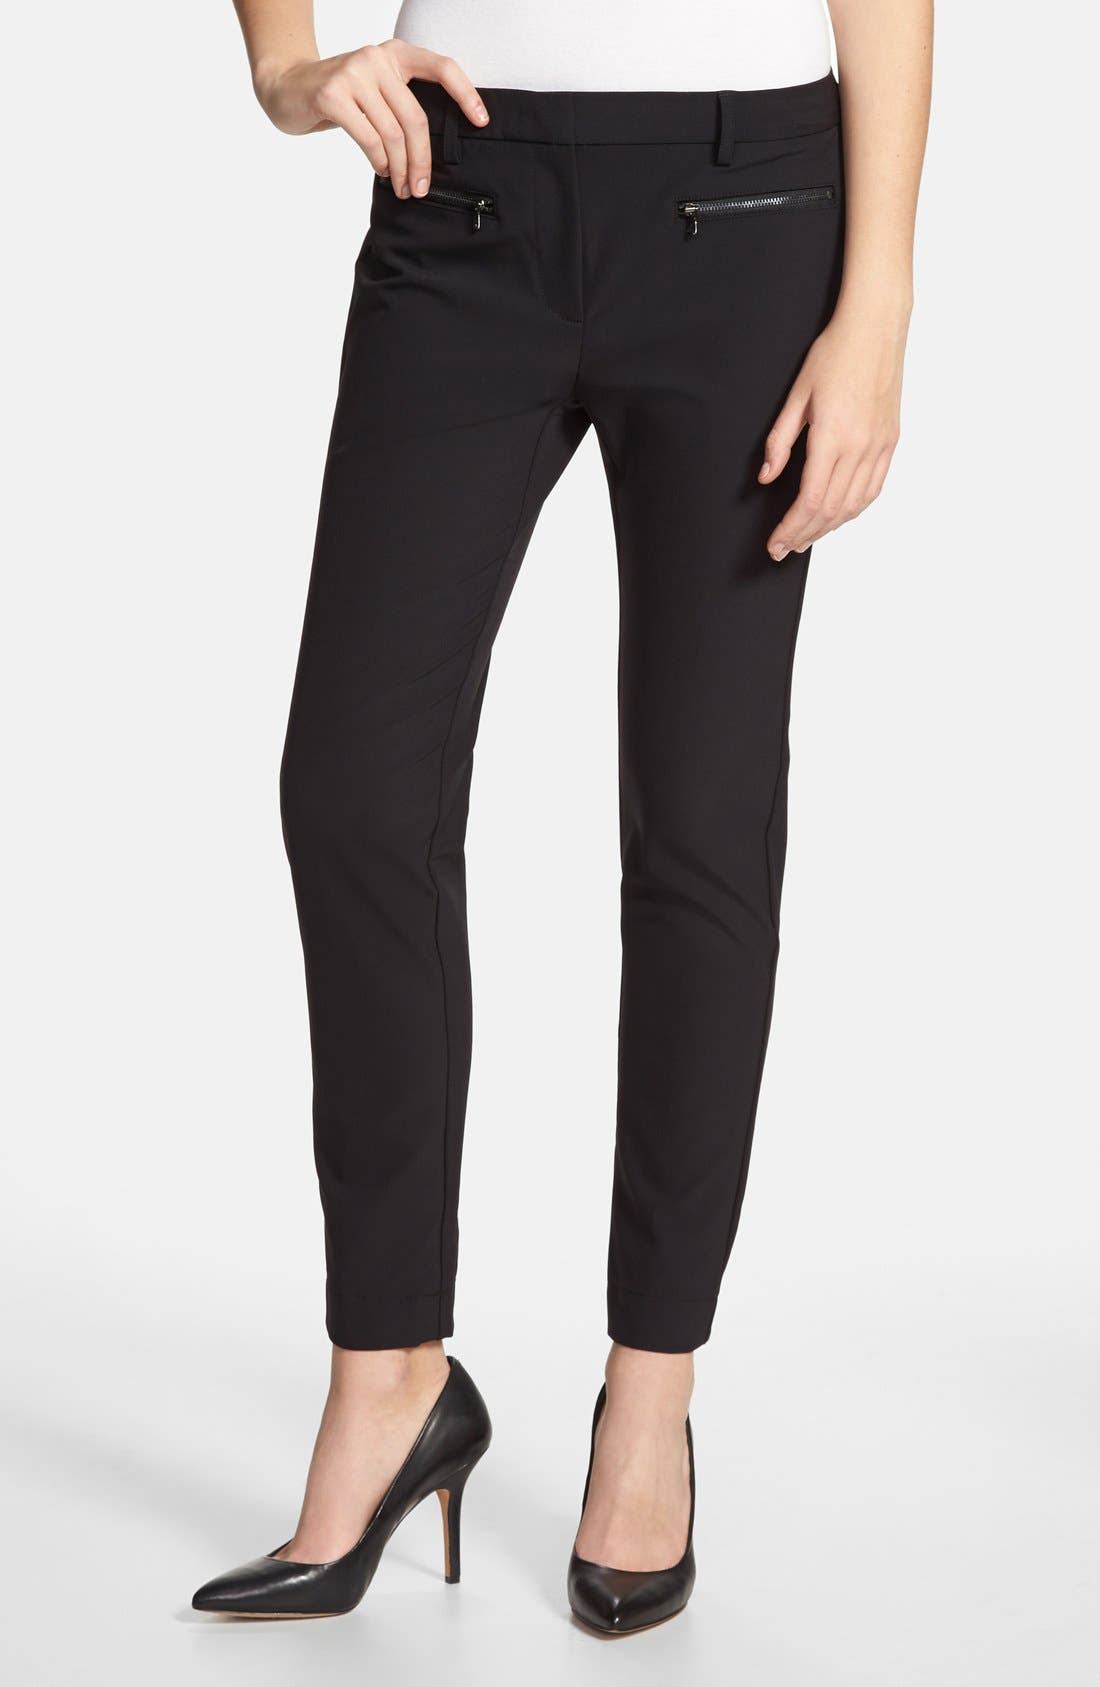 Alternate Image 1 Selected - Kenneth Cole New York 'Alison' Zip Pocket Pants (Regular & Petite)